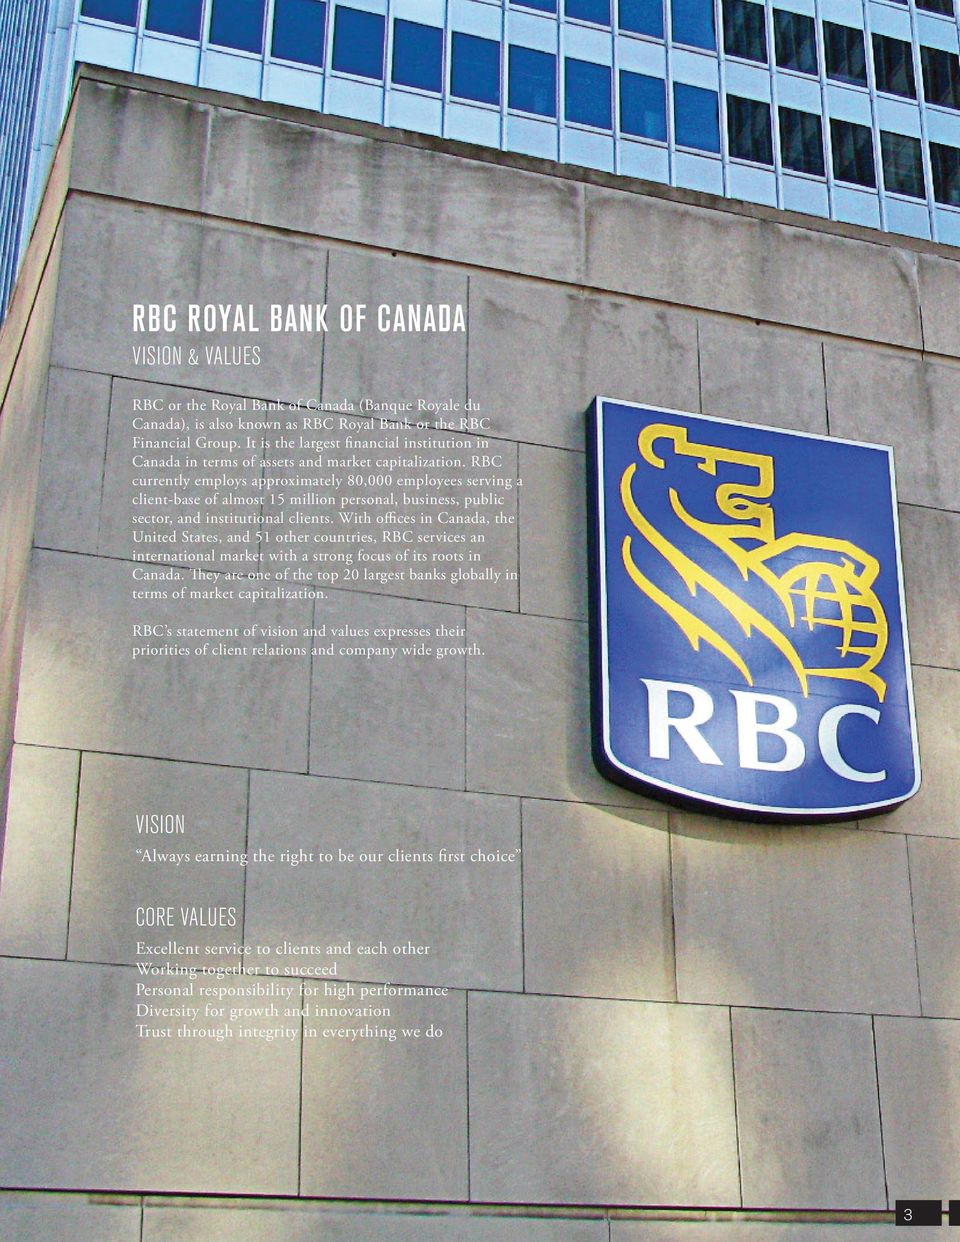 RBC currently employs approximately 80,000 employees serving a client-base of almost 15 million personal, business, public sector, and institutional clients.